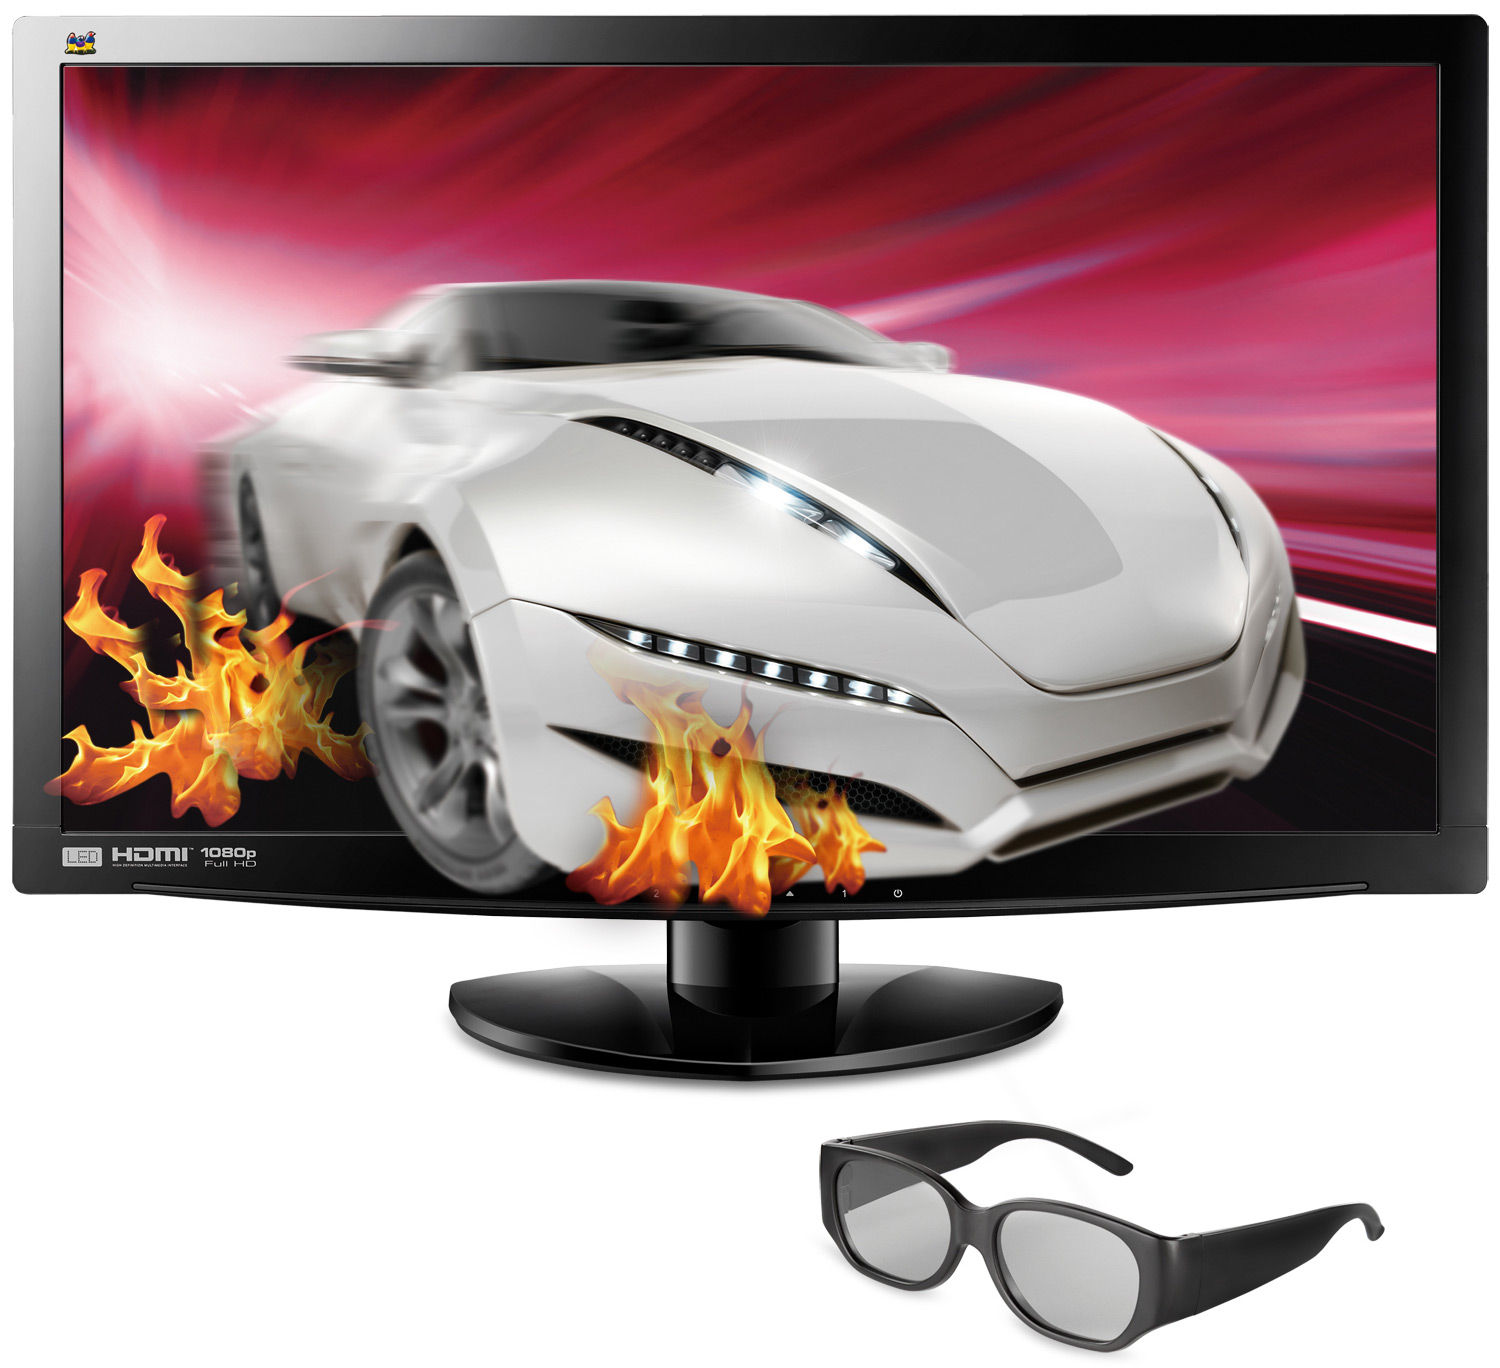 3d monitor january 12th 2012 20 comments general 3d news